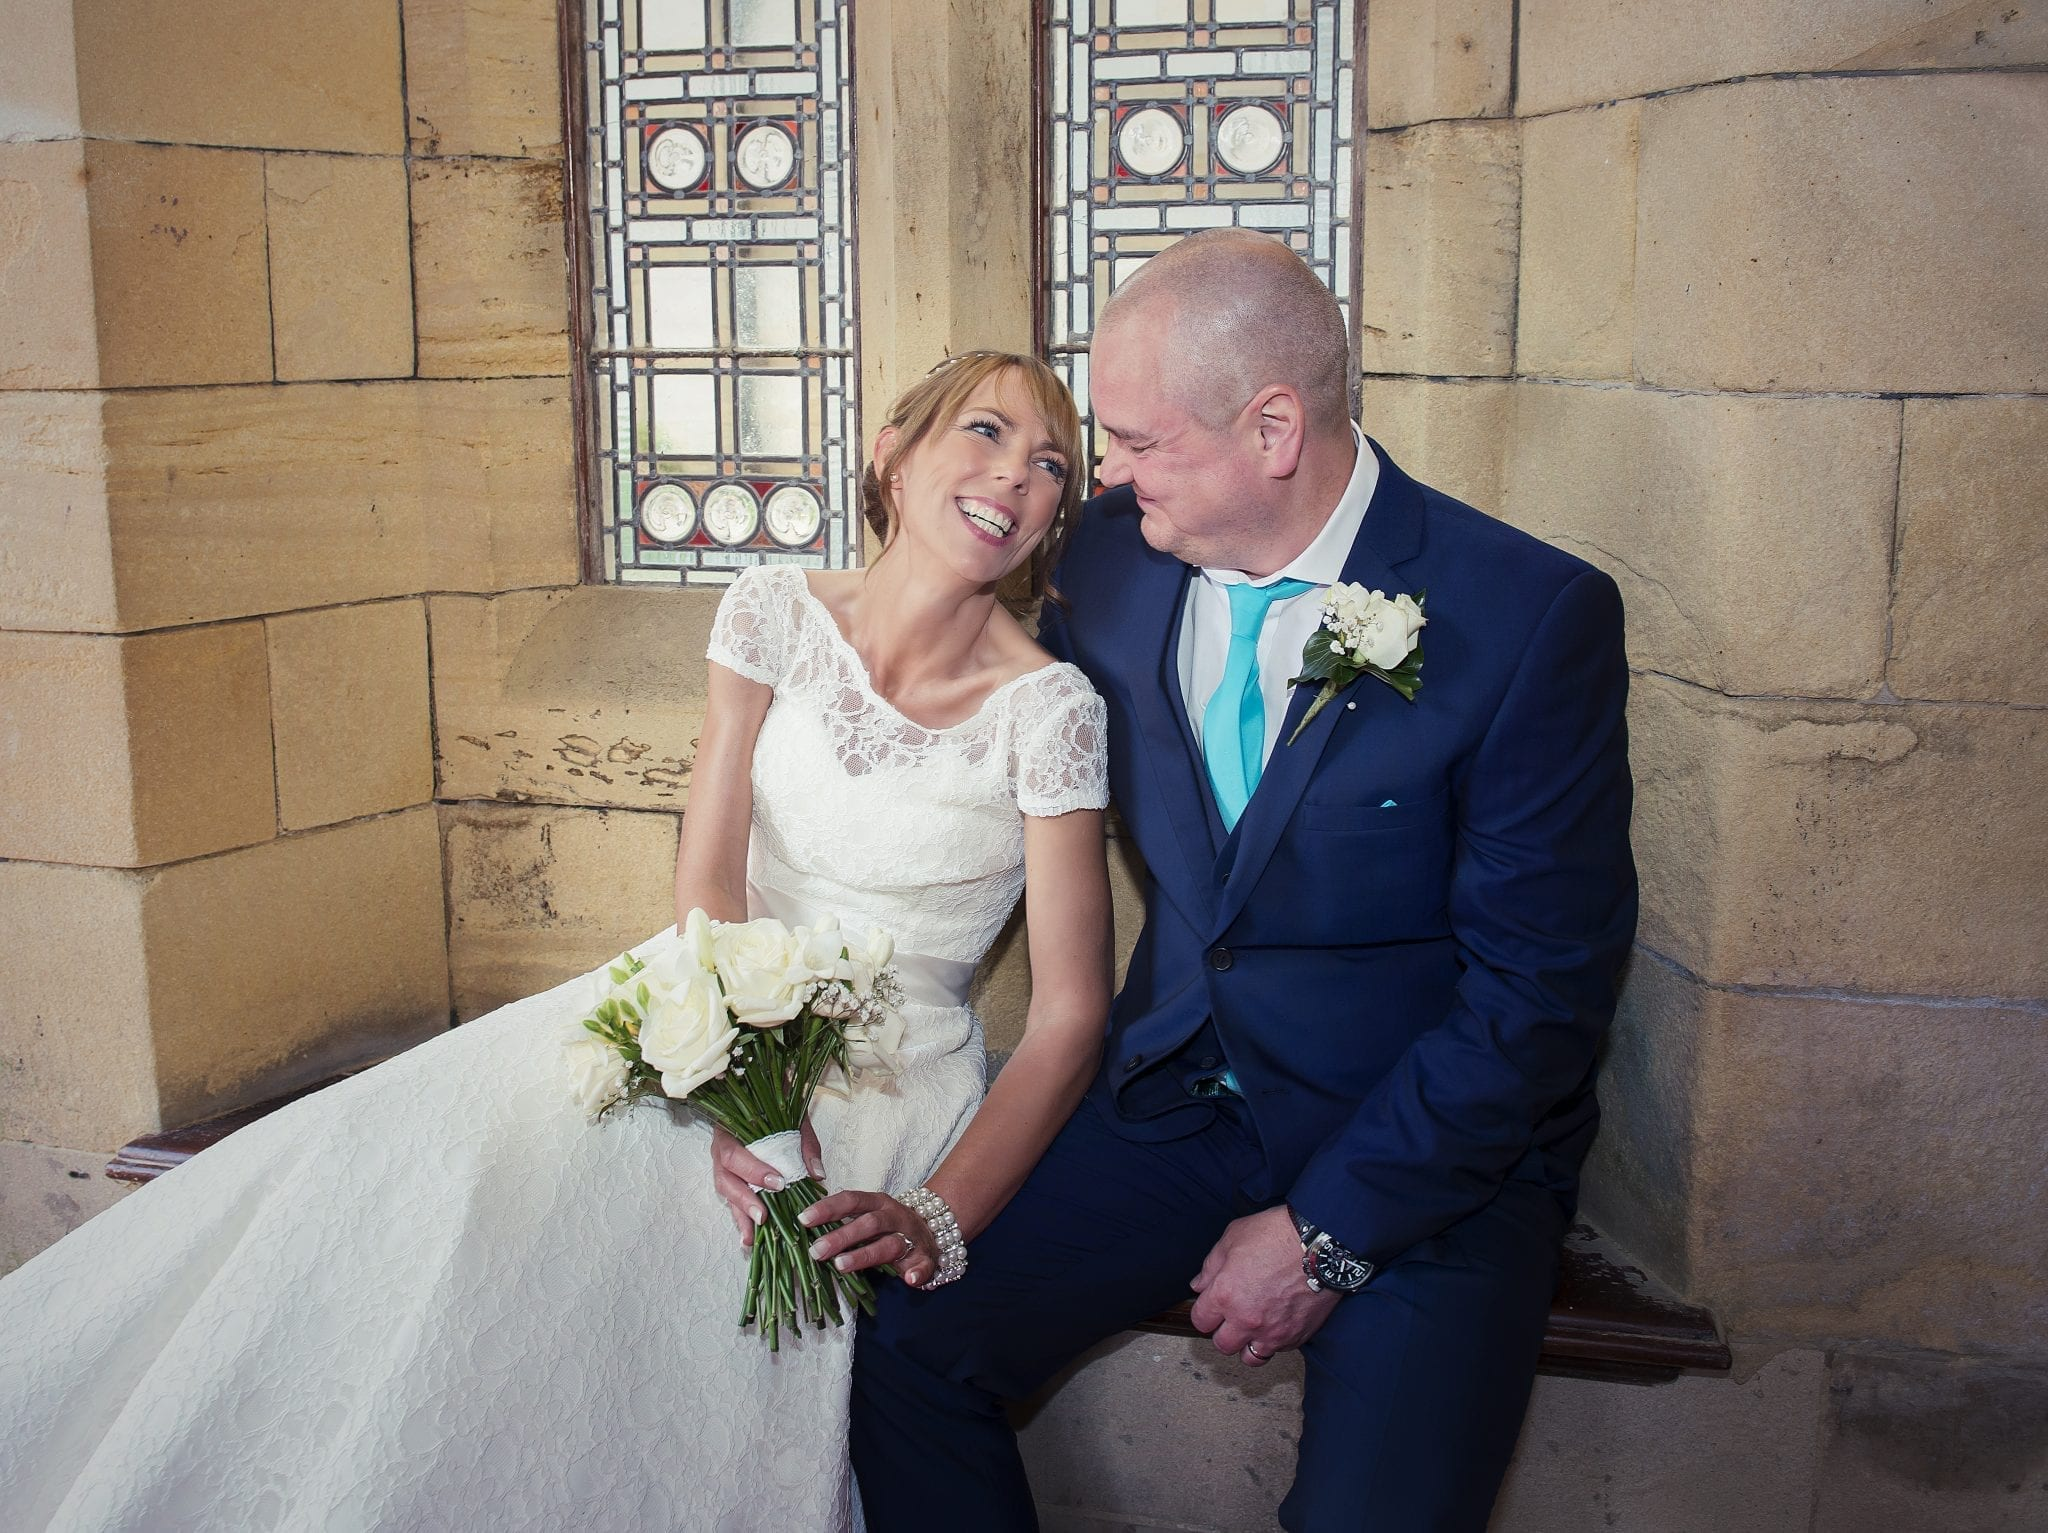 Real Wedding: Catherine and Steven's Colourful 50's Style Wedding